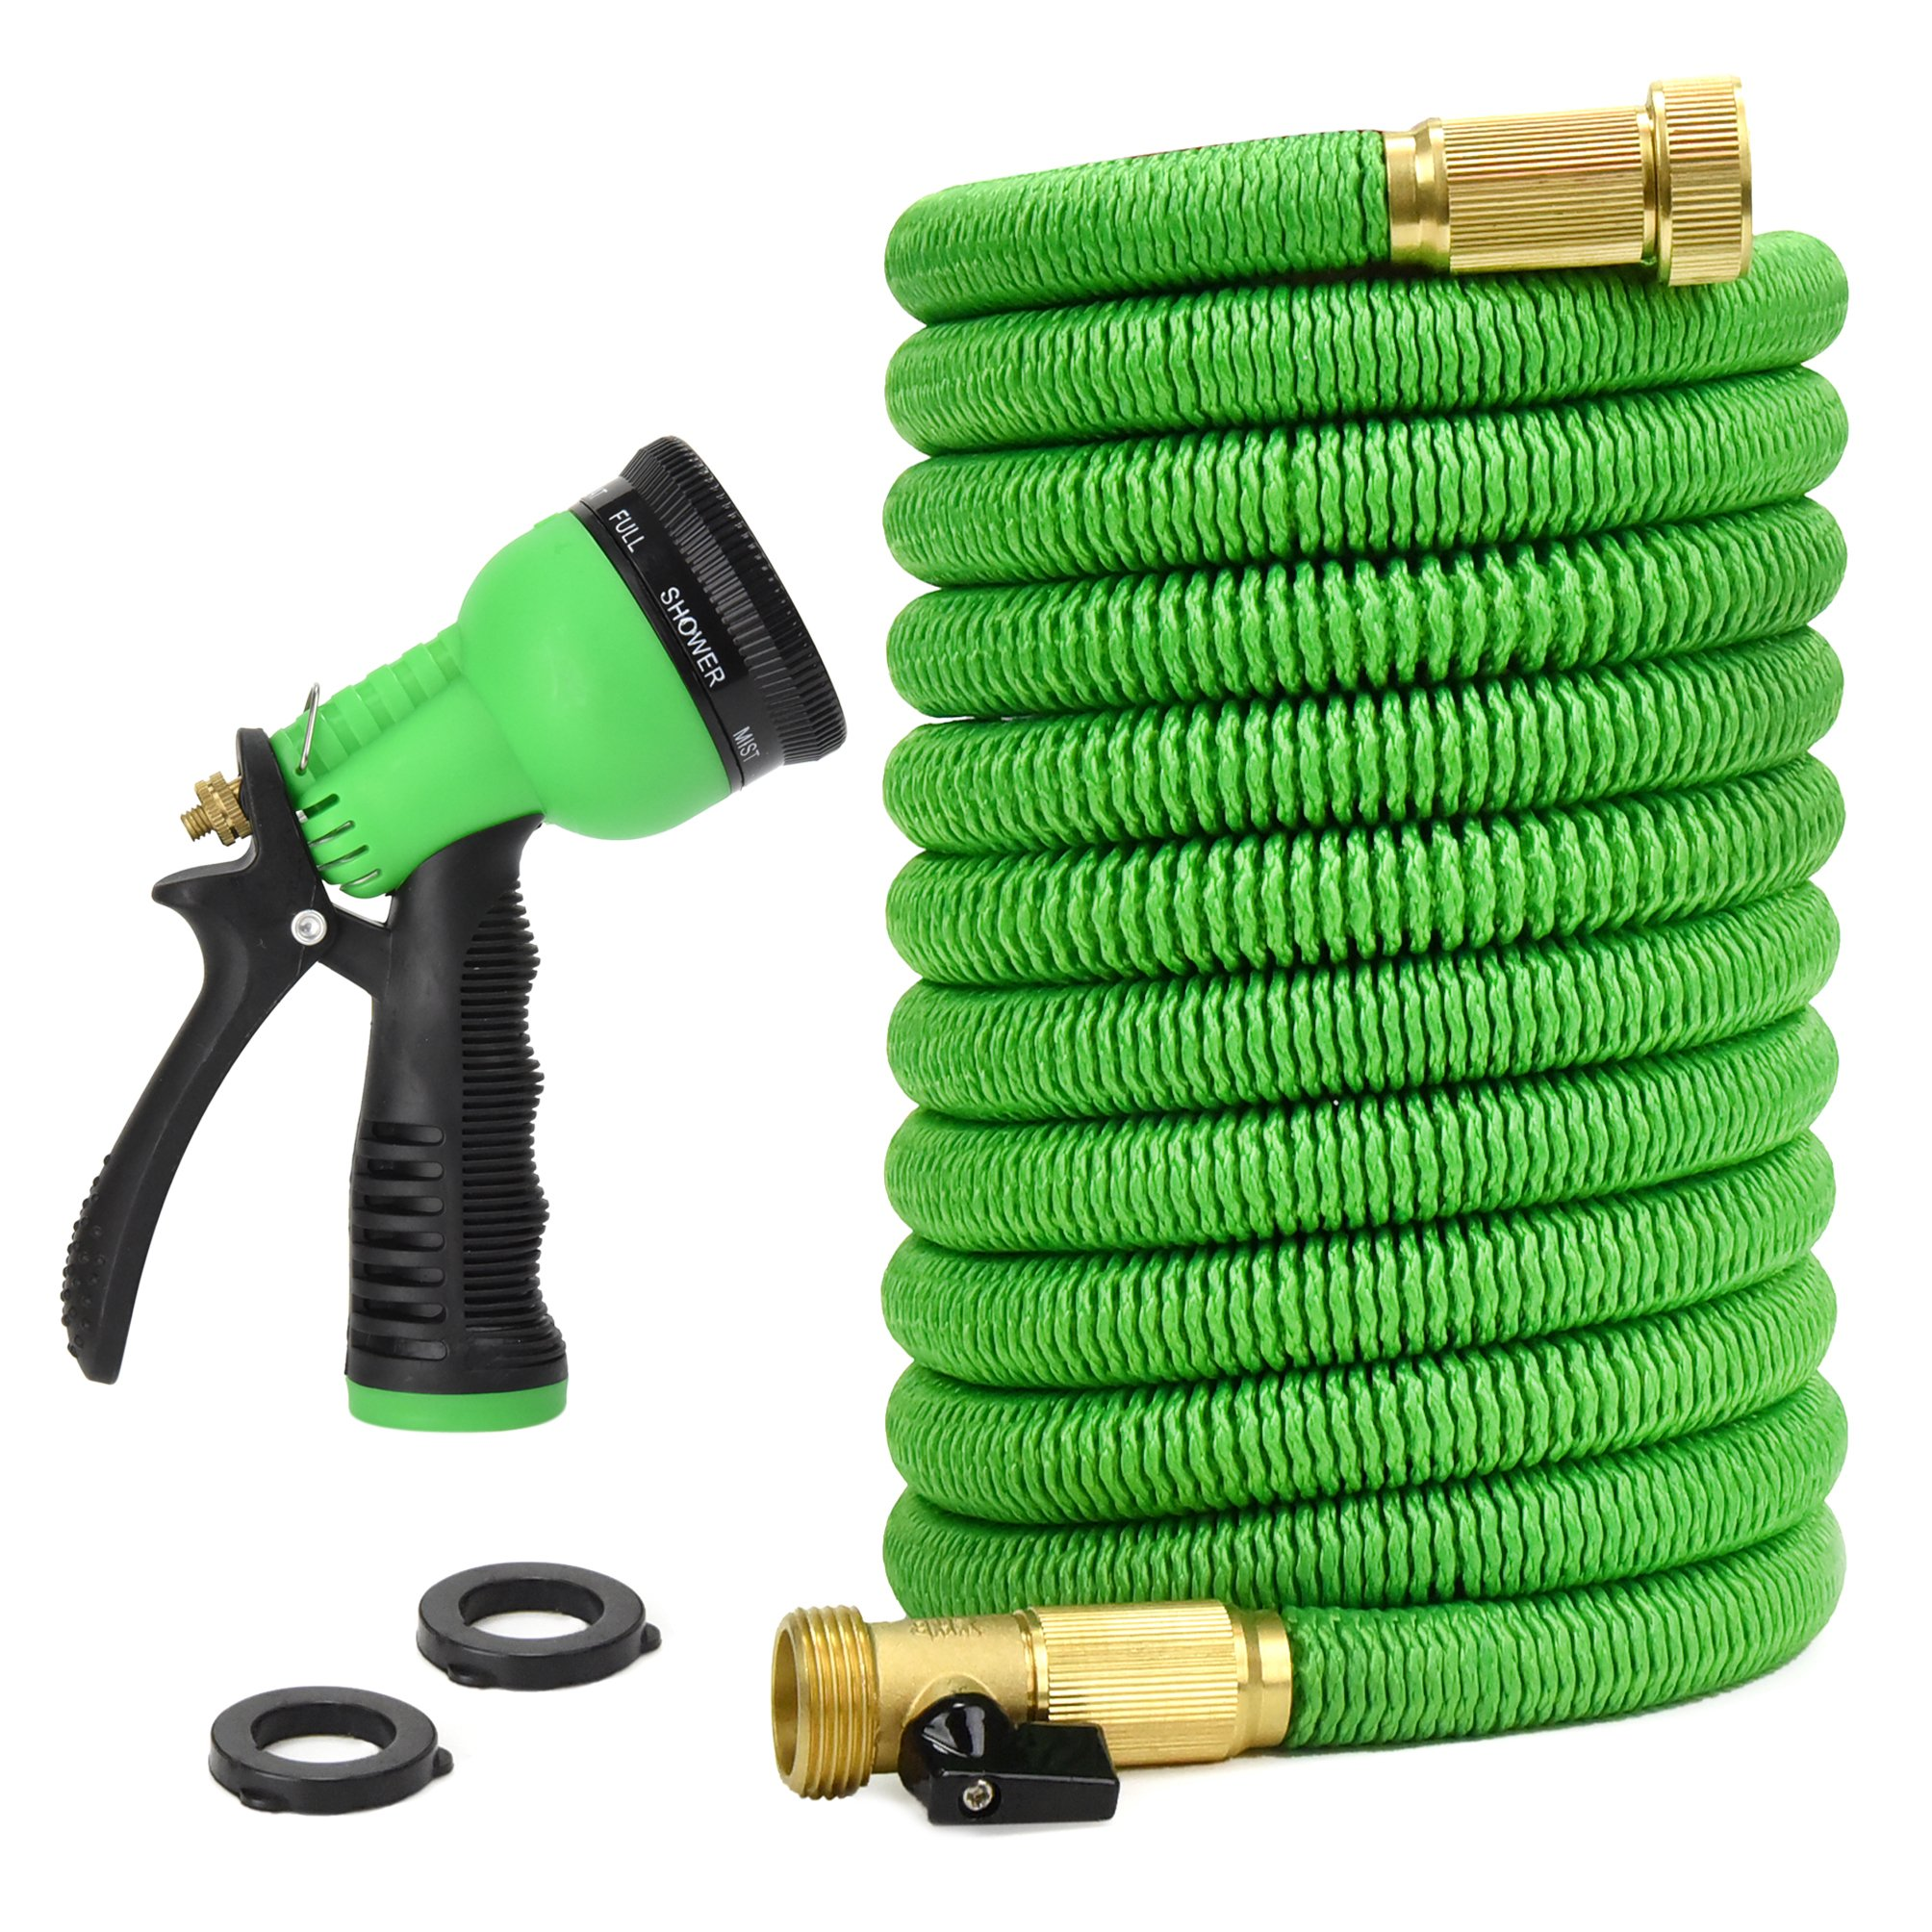 Glayko Tm 50 Feet Expandable Garden Hose - NEW 2018 Super Strong Construction- Strong Webbing -Solid Brass End + 8 Function Spray Nozzle and Shut-off Valve by Glayko